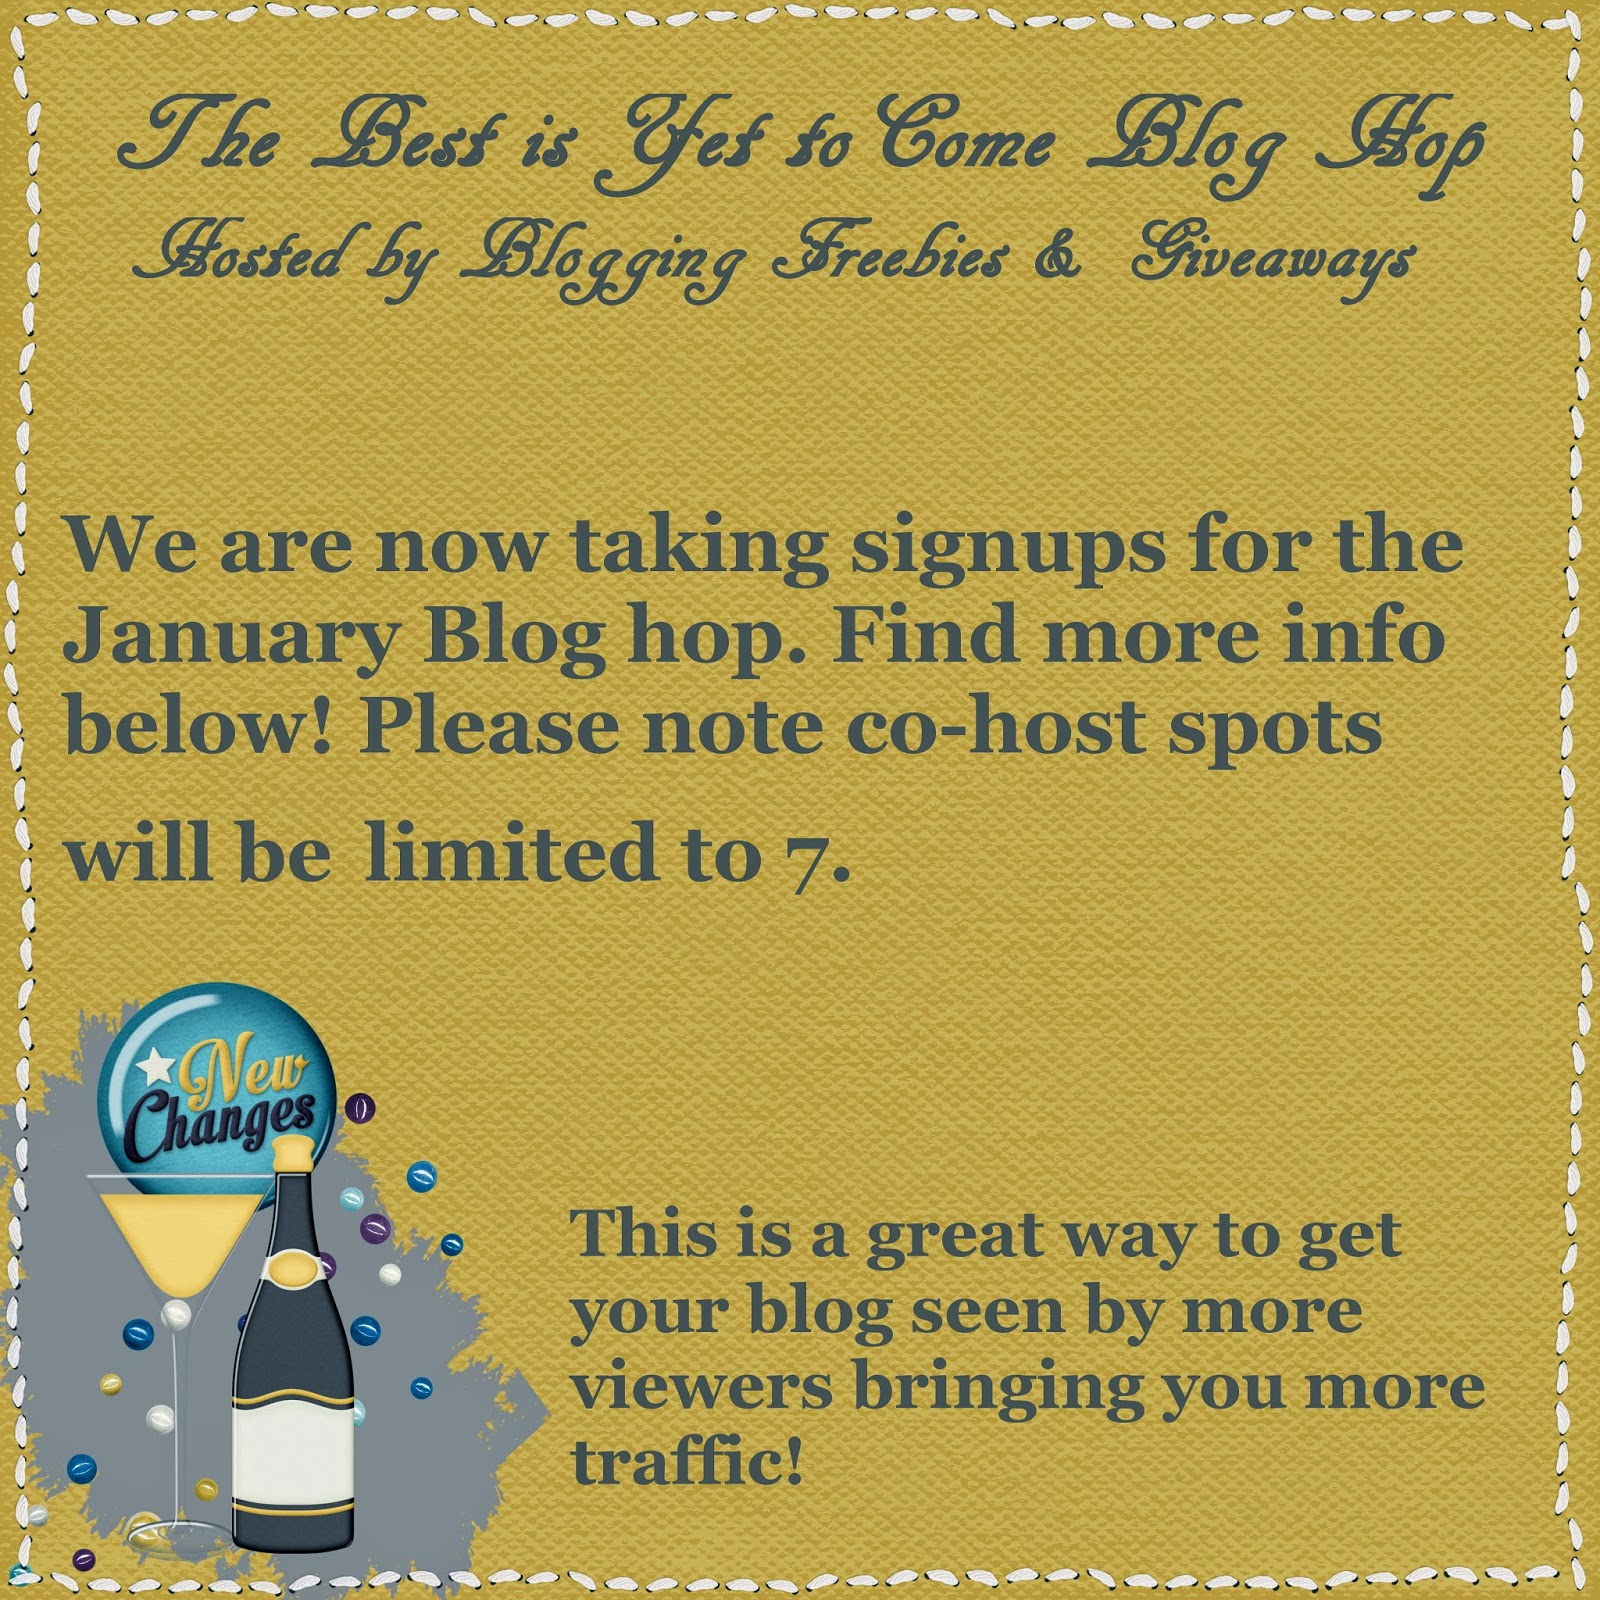 January Blog Hop Signup Announcement Post